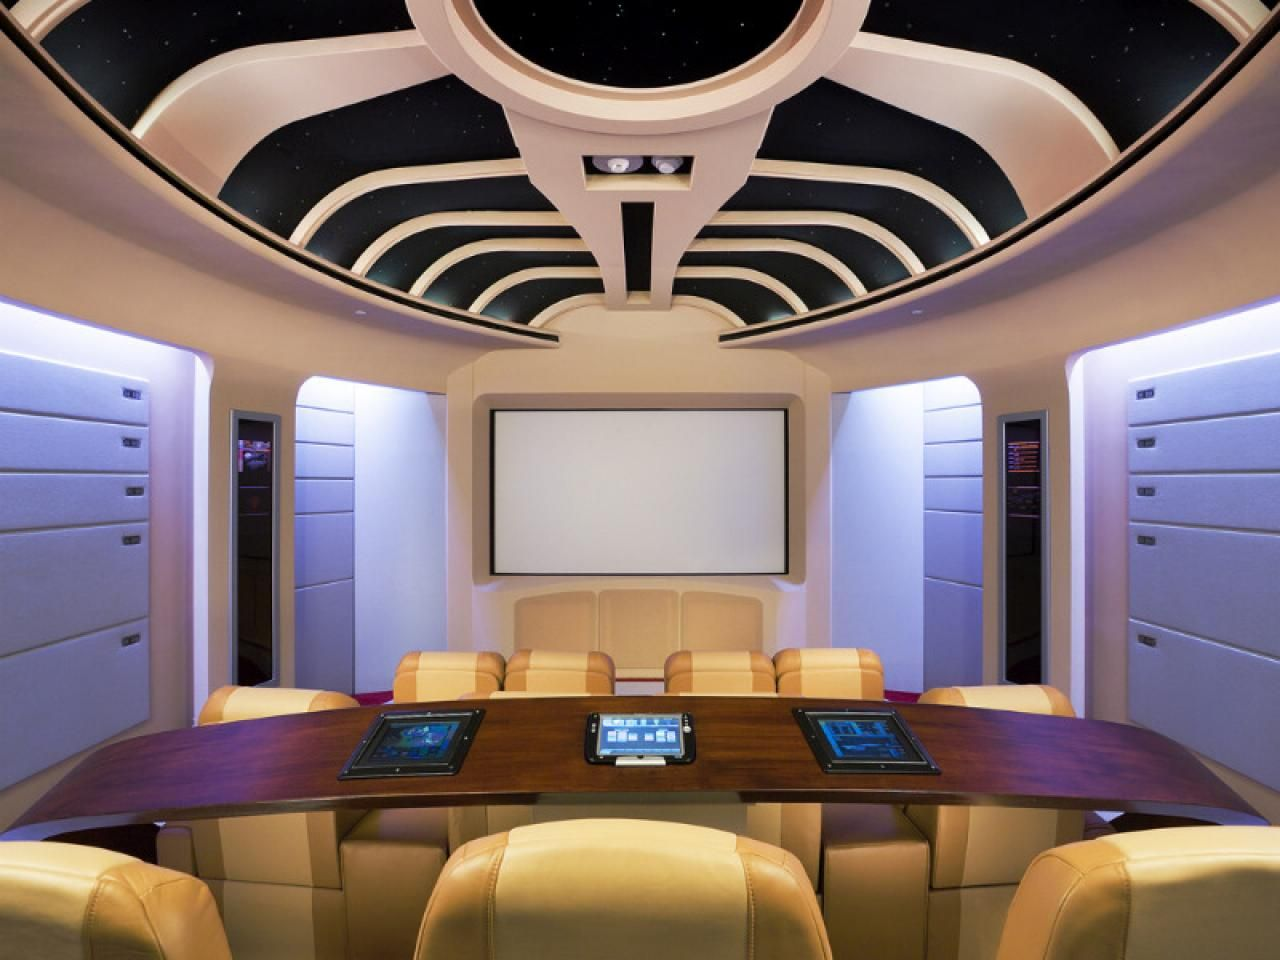 designer home theaters & media rooms: inspirational pictures